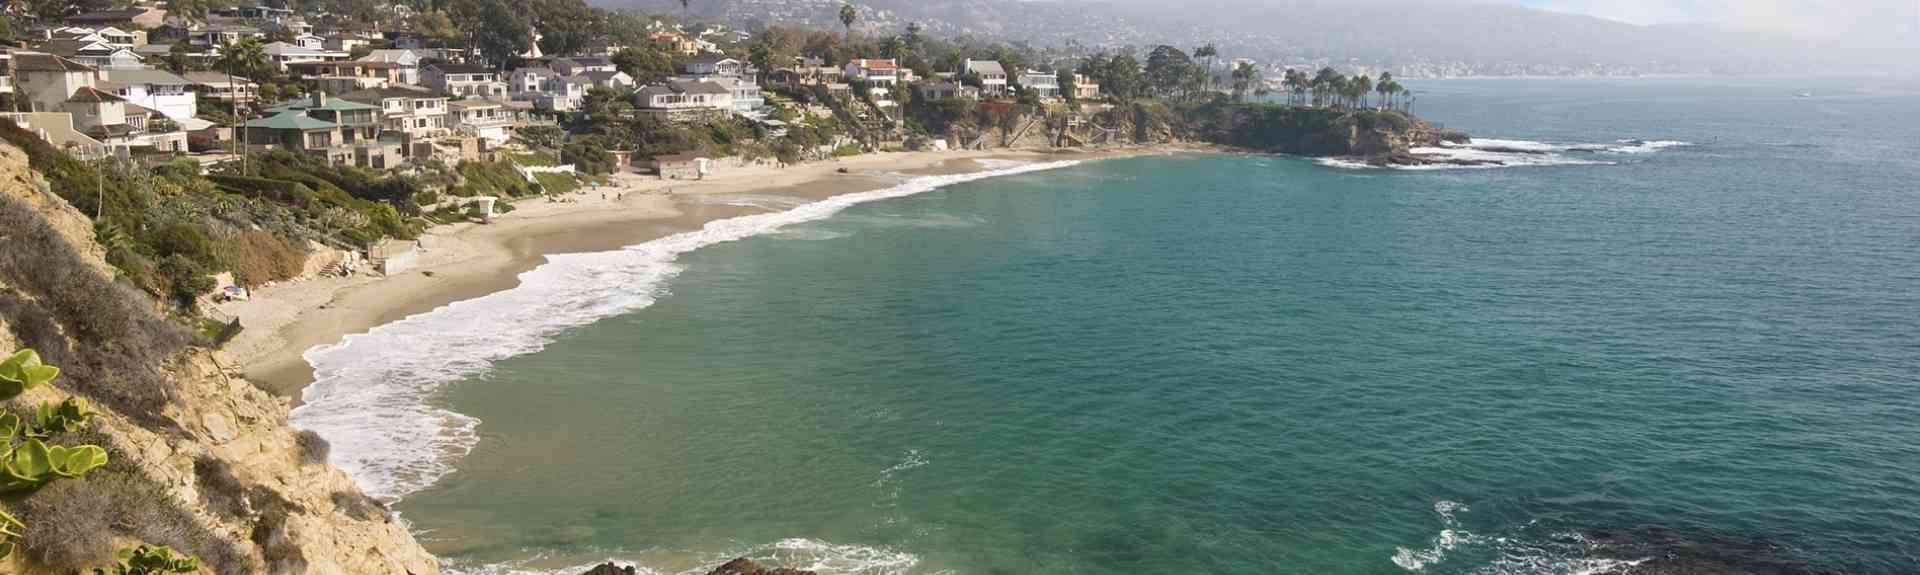 Woods Cove, Laguna Beach, California, United States of America